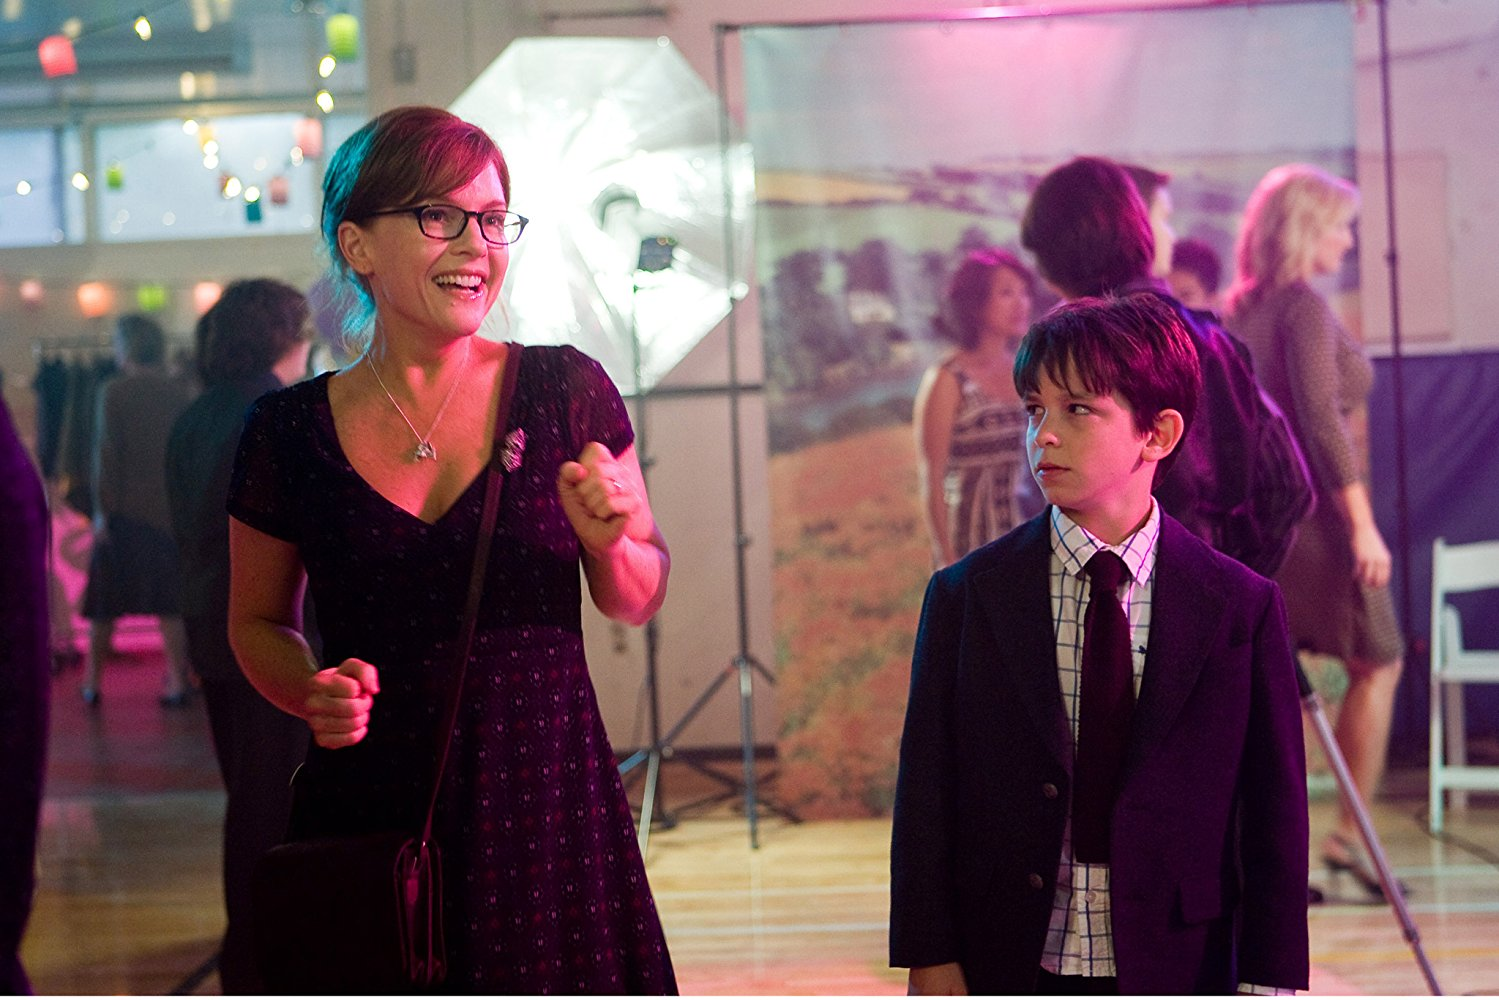 Watch Movies And Tv Shows With Character Susan Heffley For Free List Of Movies Diary Of A Wimpy Kid The Long Haul Diary Of A Wimpy Kid Dog Days